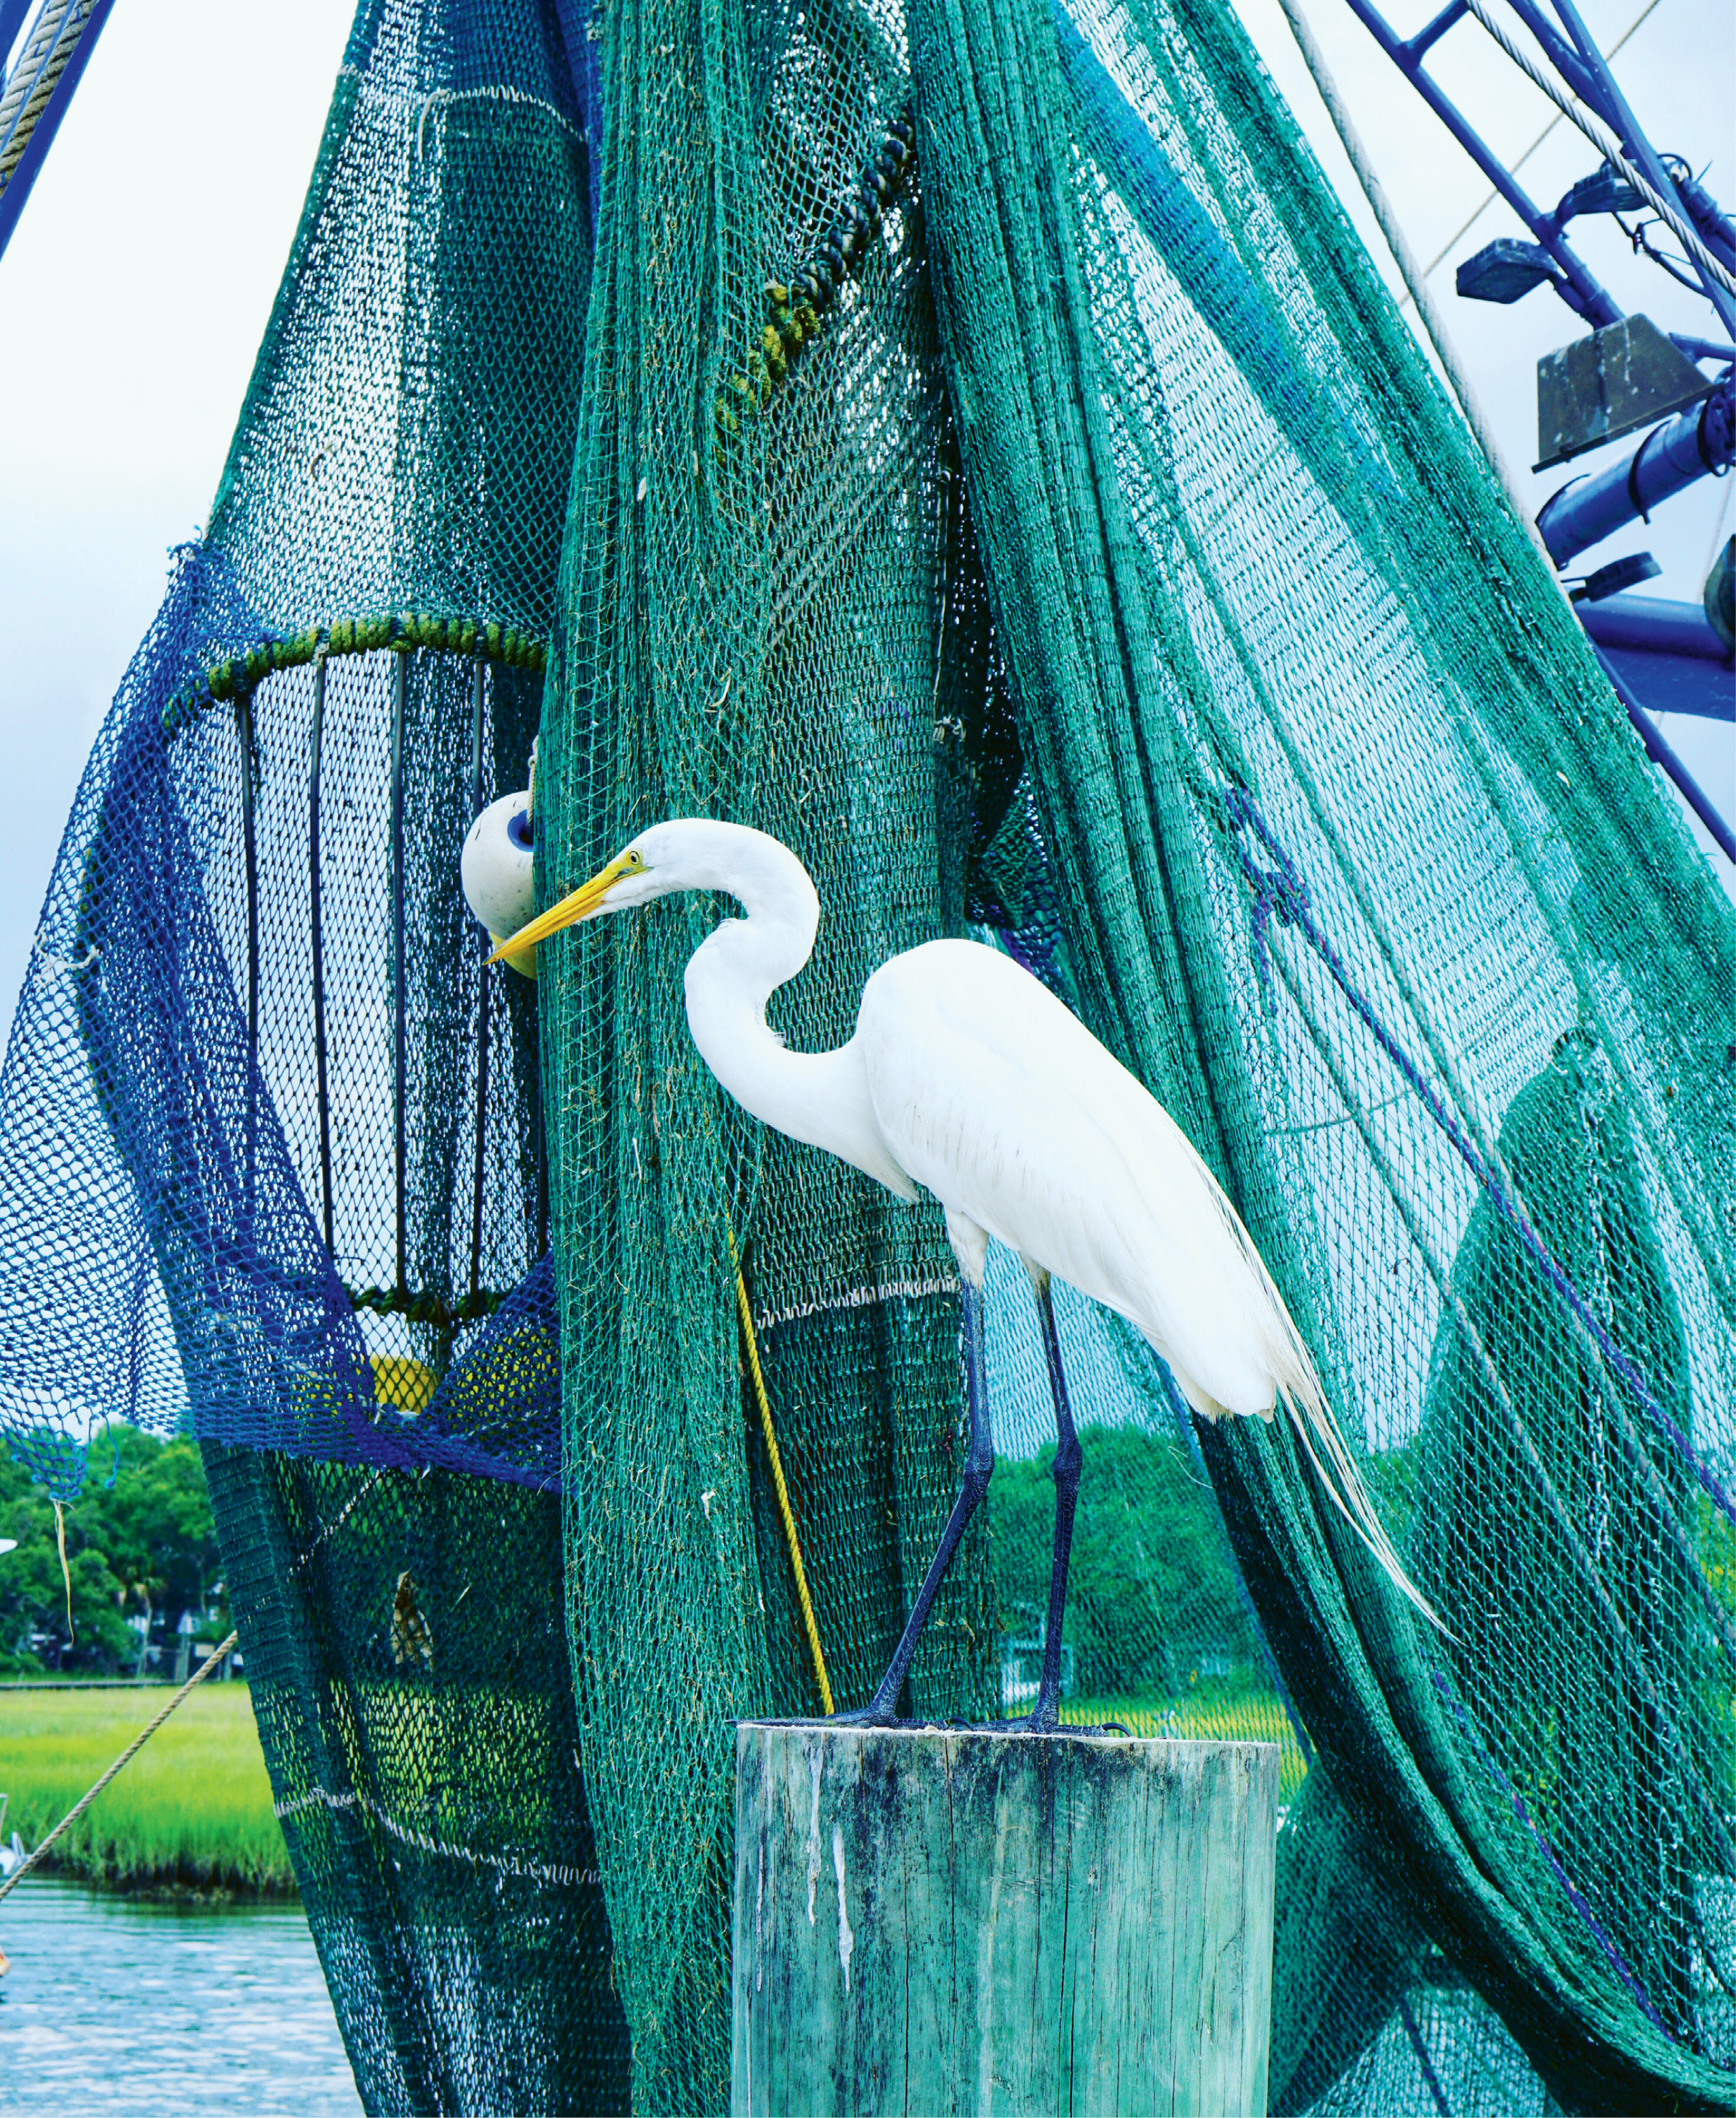 1st Place Amateur Category - Eyeing the Catch of the Day by Marnie Huger  {Amateur category}  - A great egret patiently awaits his next meal on a shrimp boat docked on Shem  Creek last summer.